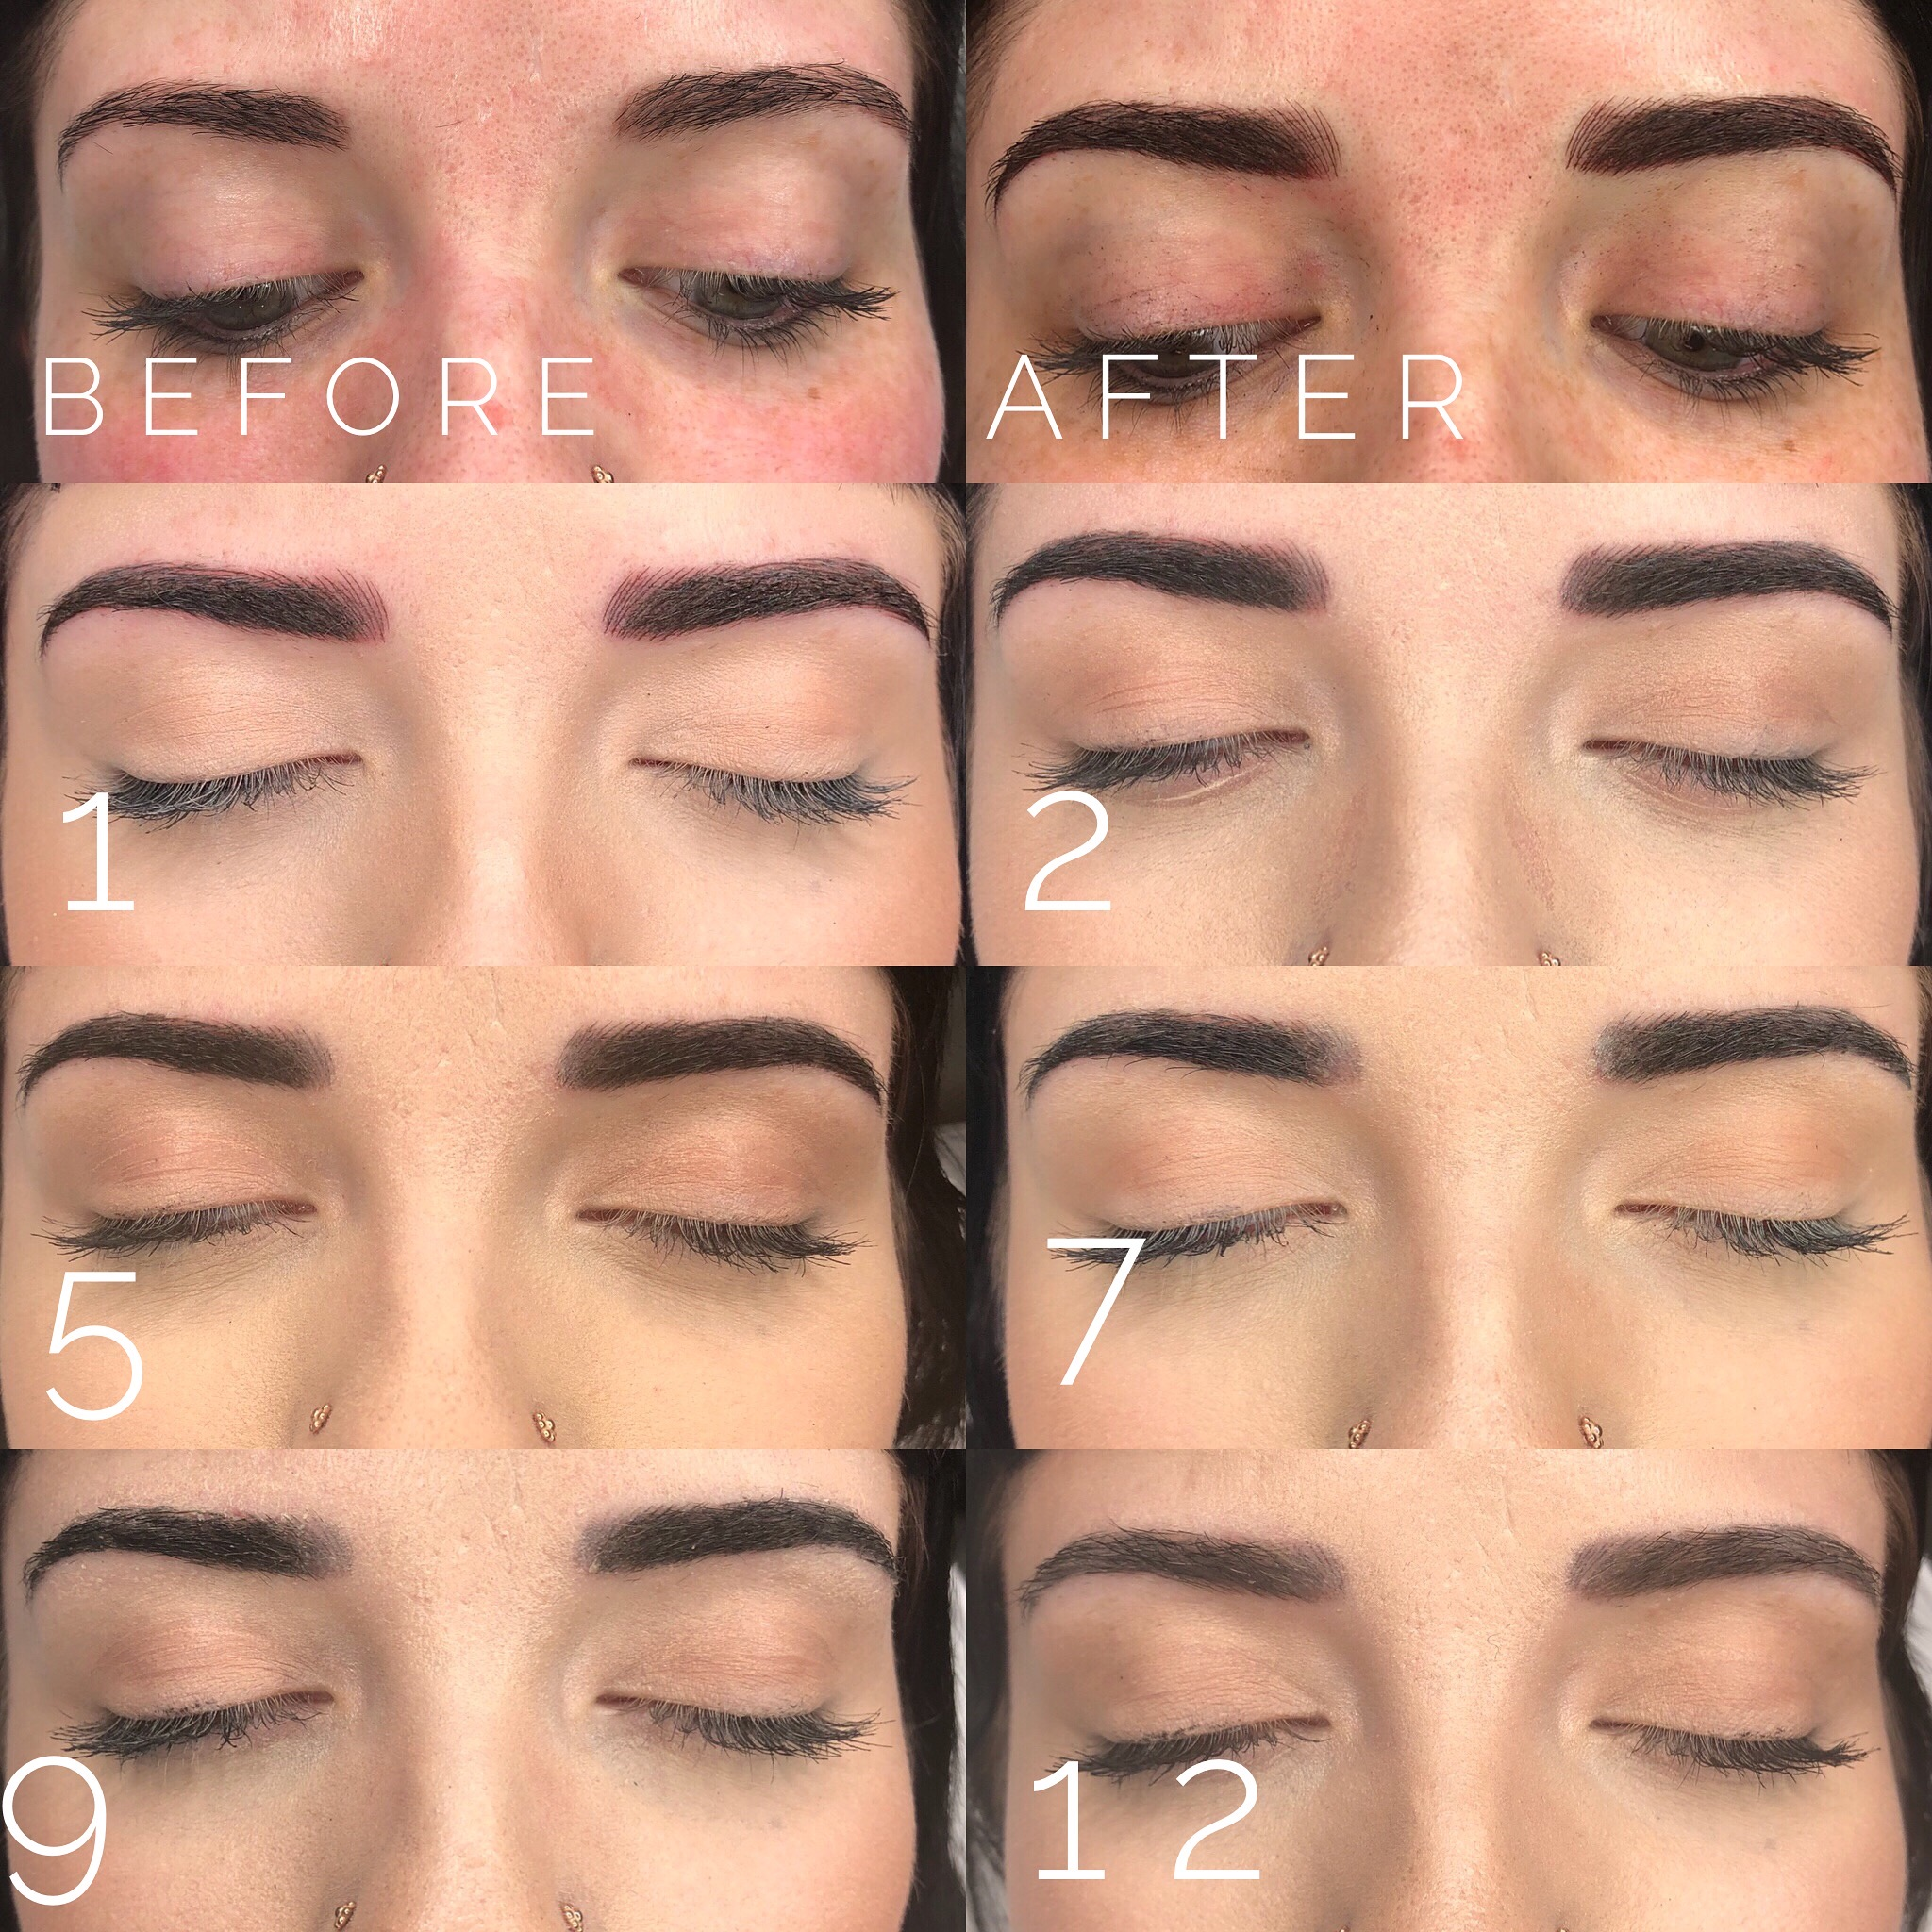 Microblading Healing Stages - Here is an example of what a brow looks like while healing. The Color starts off pretty Vibrant then gets very dark as the scabs form. Redness goes away after a couple of days and a couple days after that the scabs start to exfoliate off. Please remember the healing is a process and it is important to not judge your brows for about 3 weeks after having them done. The procedure can cause slight swelling that can make the brow seem